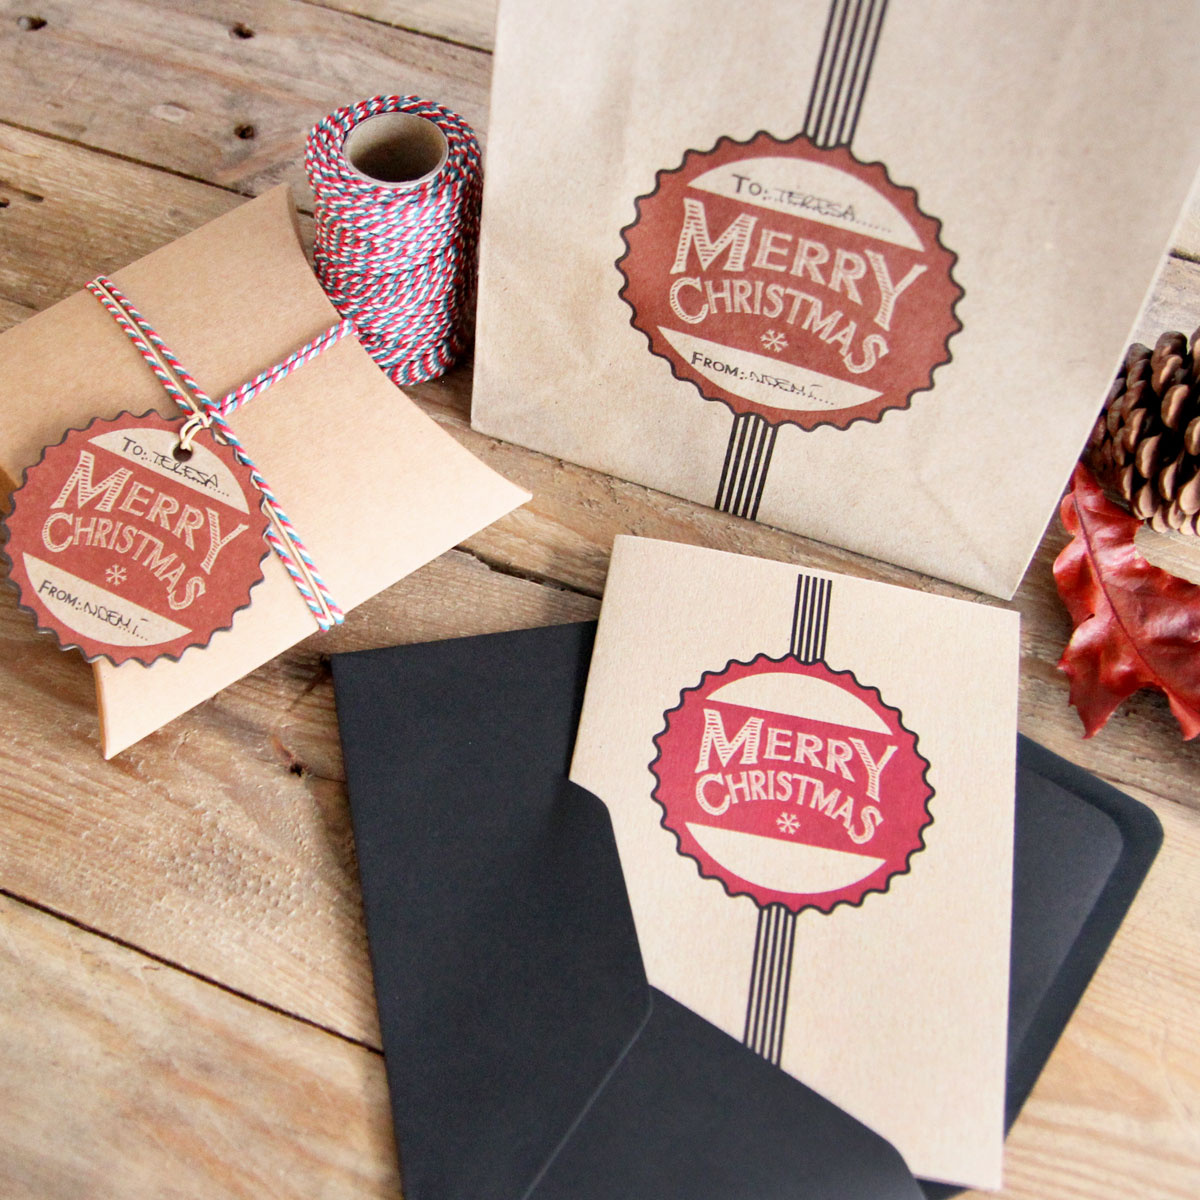 Mr_wonderful_shop_decoracion_navidad_2014_031